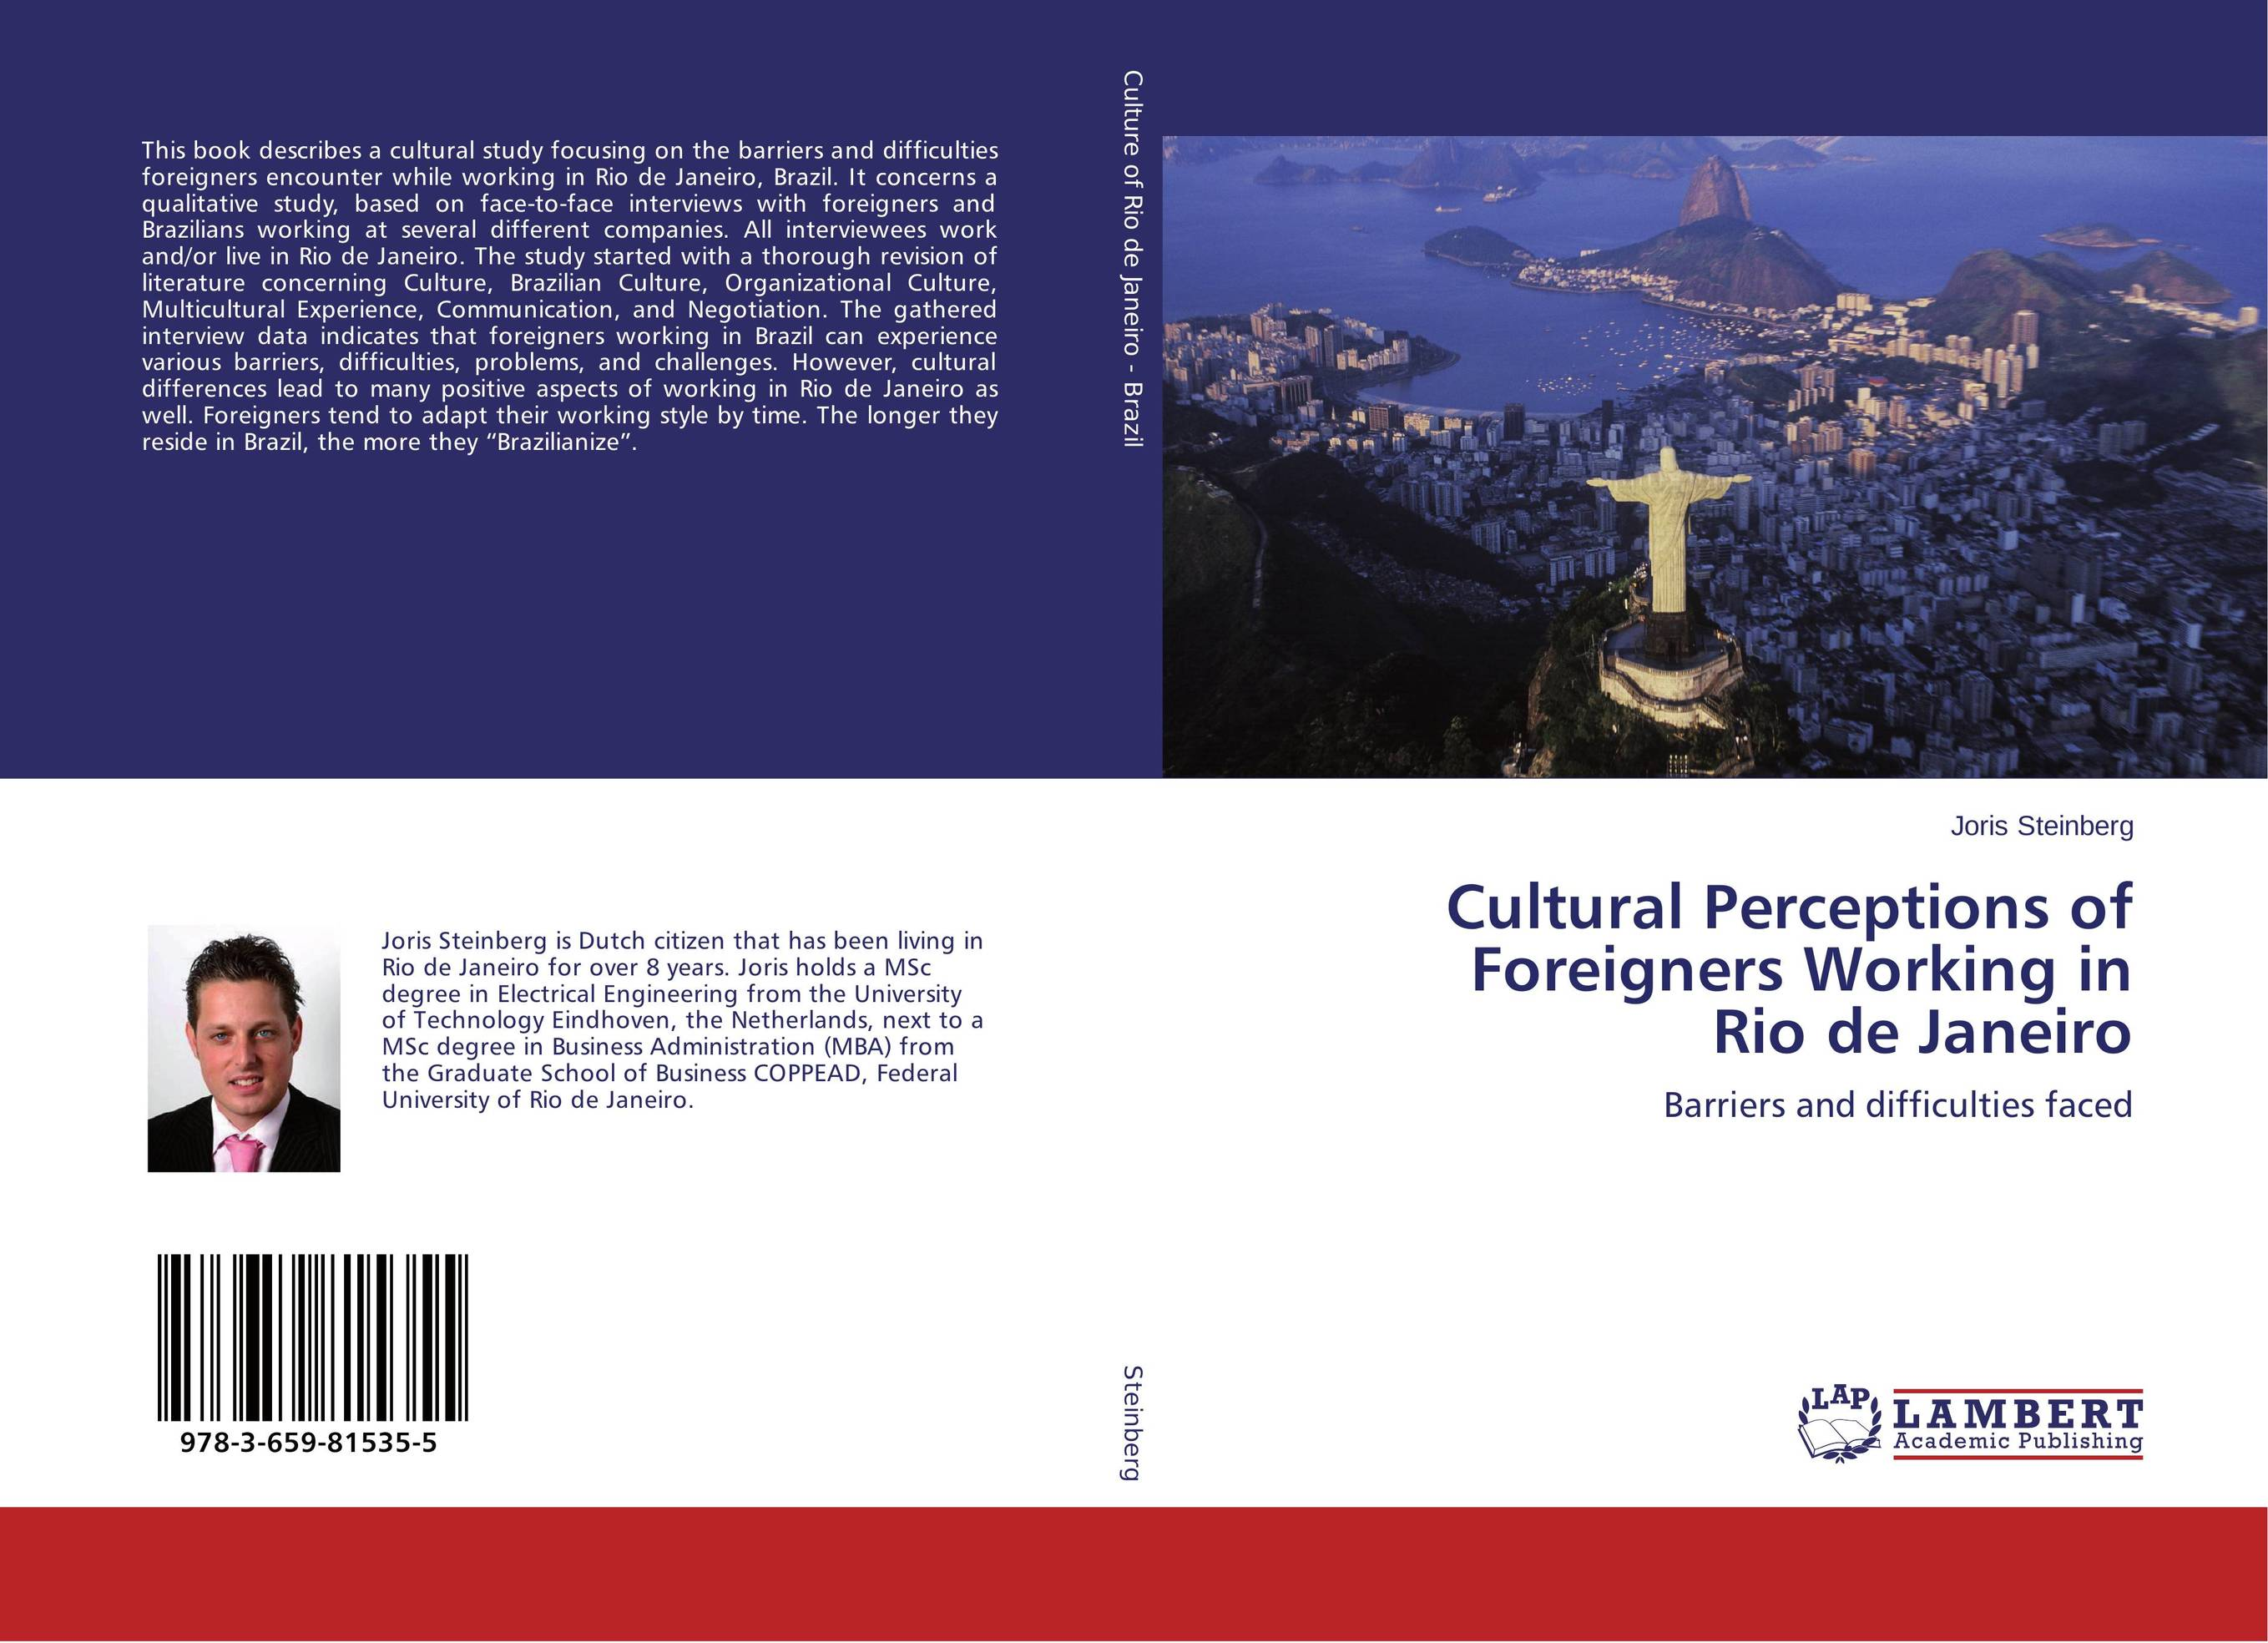 Cultural Perceptions of Foreigners Working in Rio de Janeiro 30pcs in one postcard take a walk on the go rio de janeiro christmas postcards greeting birthday message cards 10 2x14 2cm